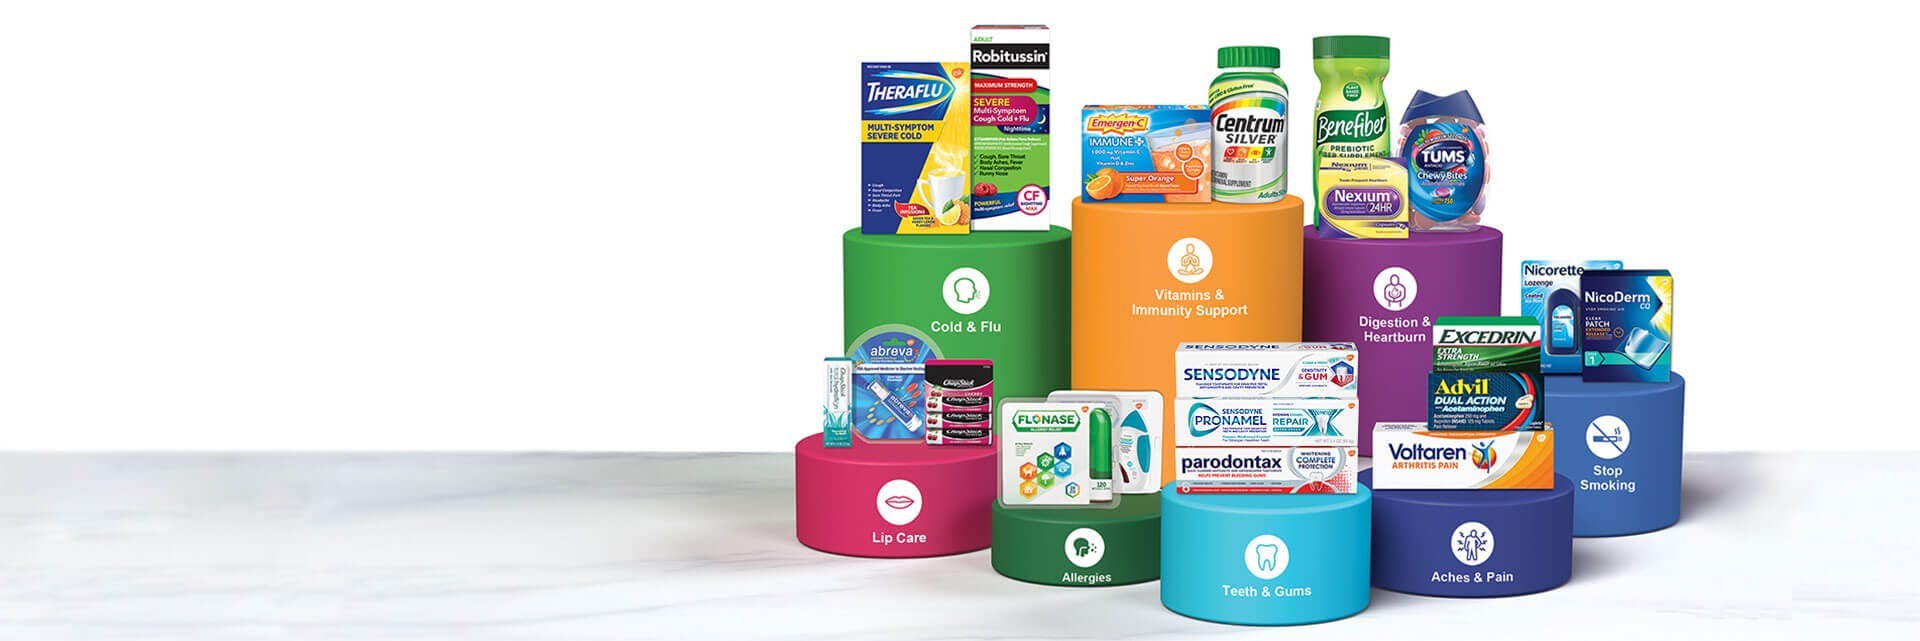 From flu season to allergy season, oral health to immune support, you can turn to GSK. Our family of brands can provide exactly what you need to be well and stay well, all year long.